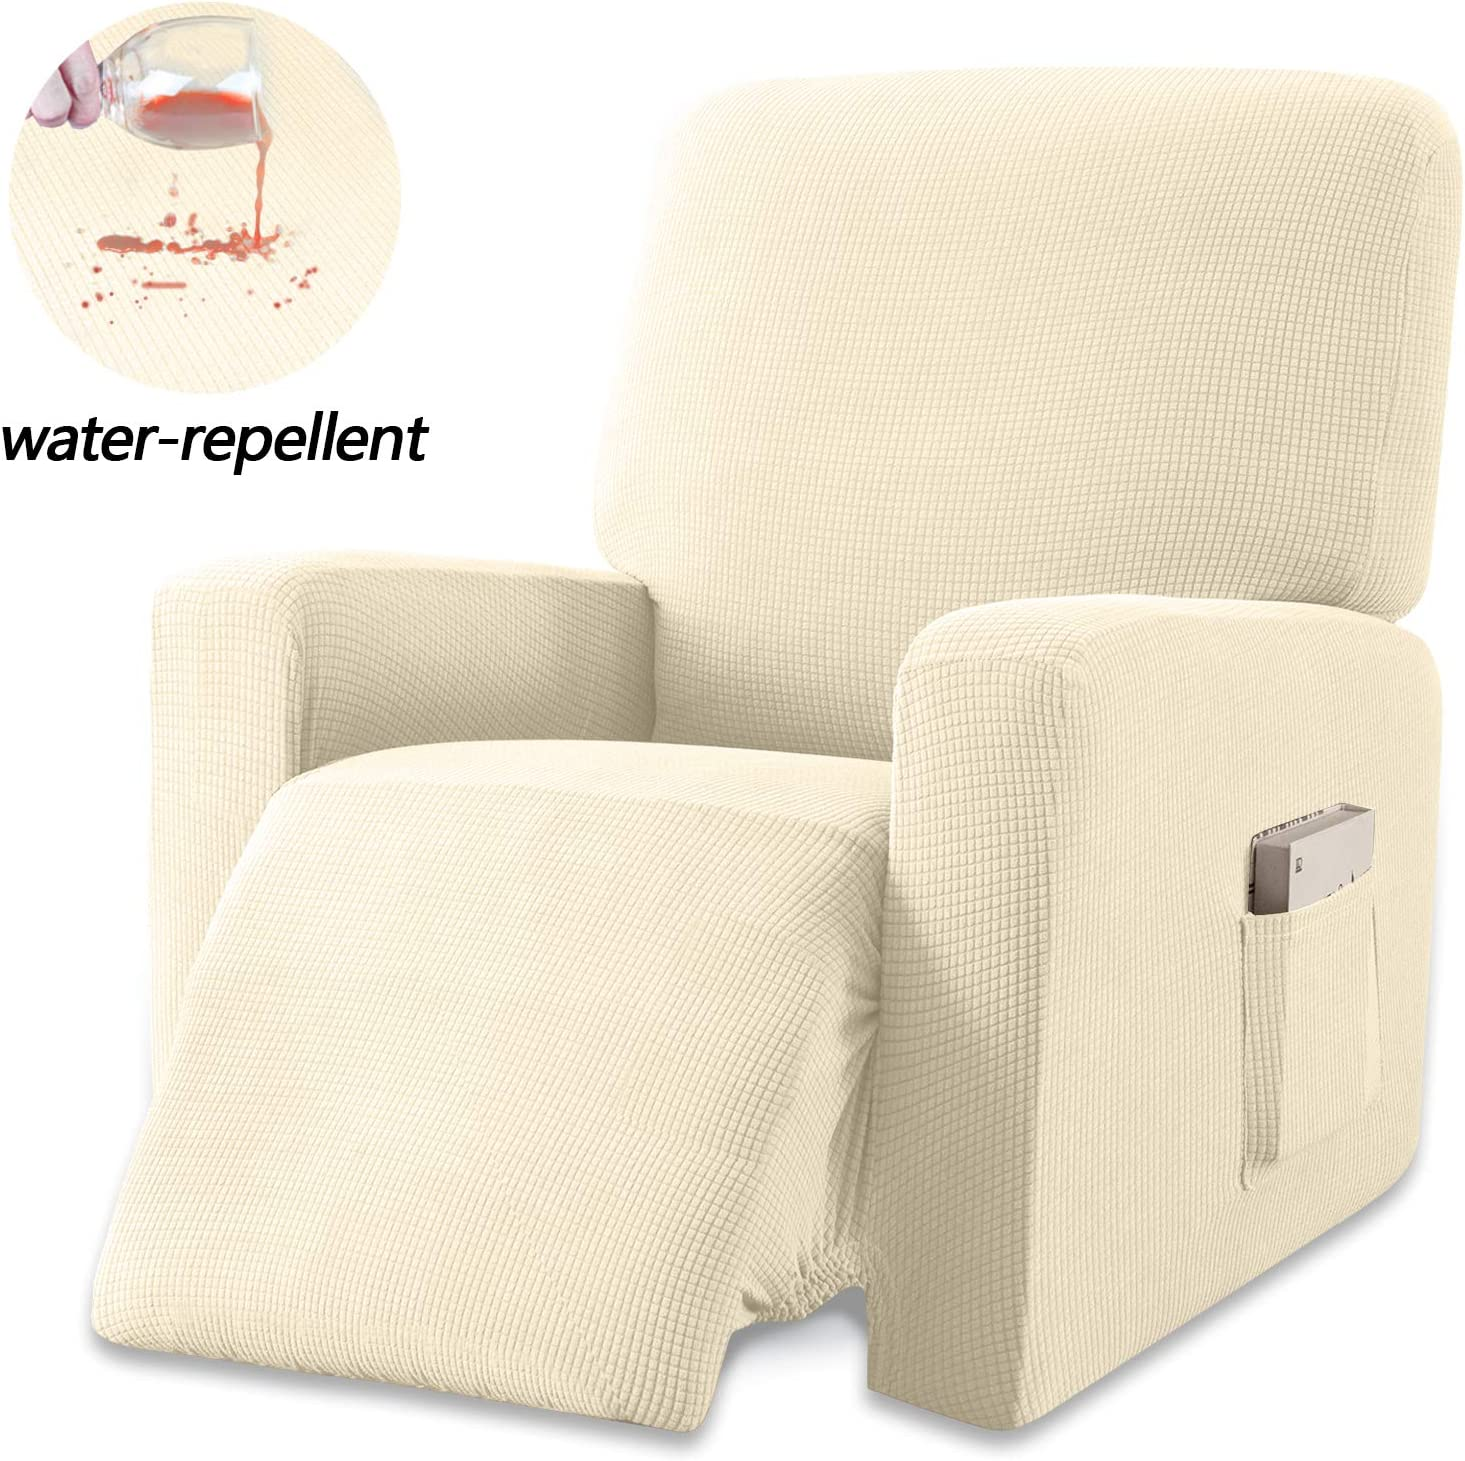 Granbest Premium Water Repellent Recliner Chair Cover High Stretch Jacquard Fabric Recliner Slipcover with Pockets (Recliner, Beige)